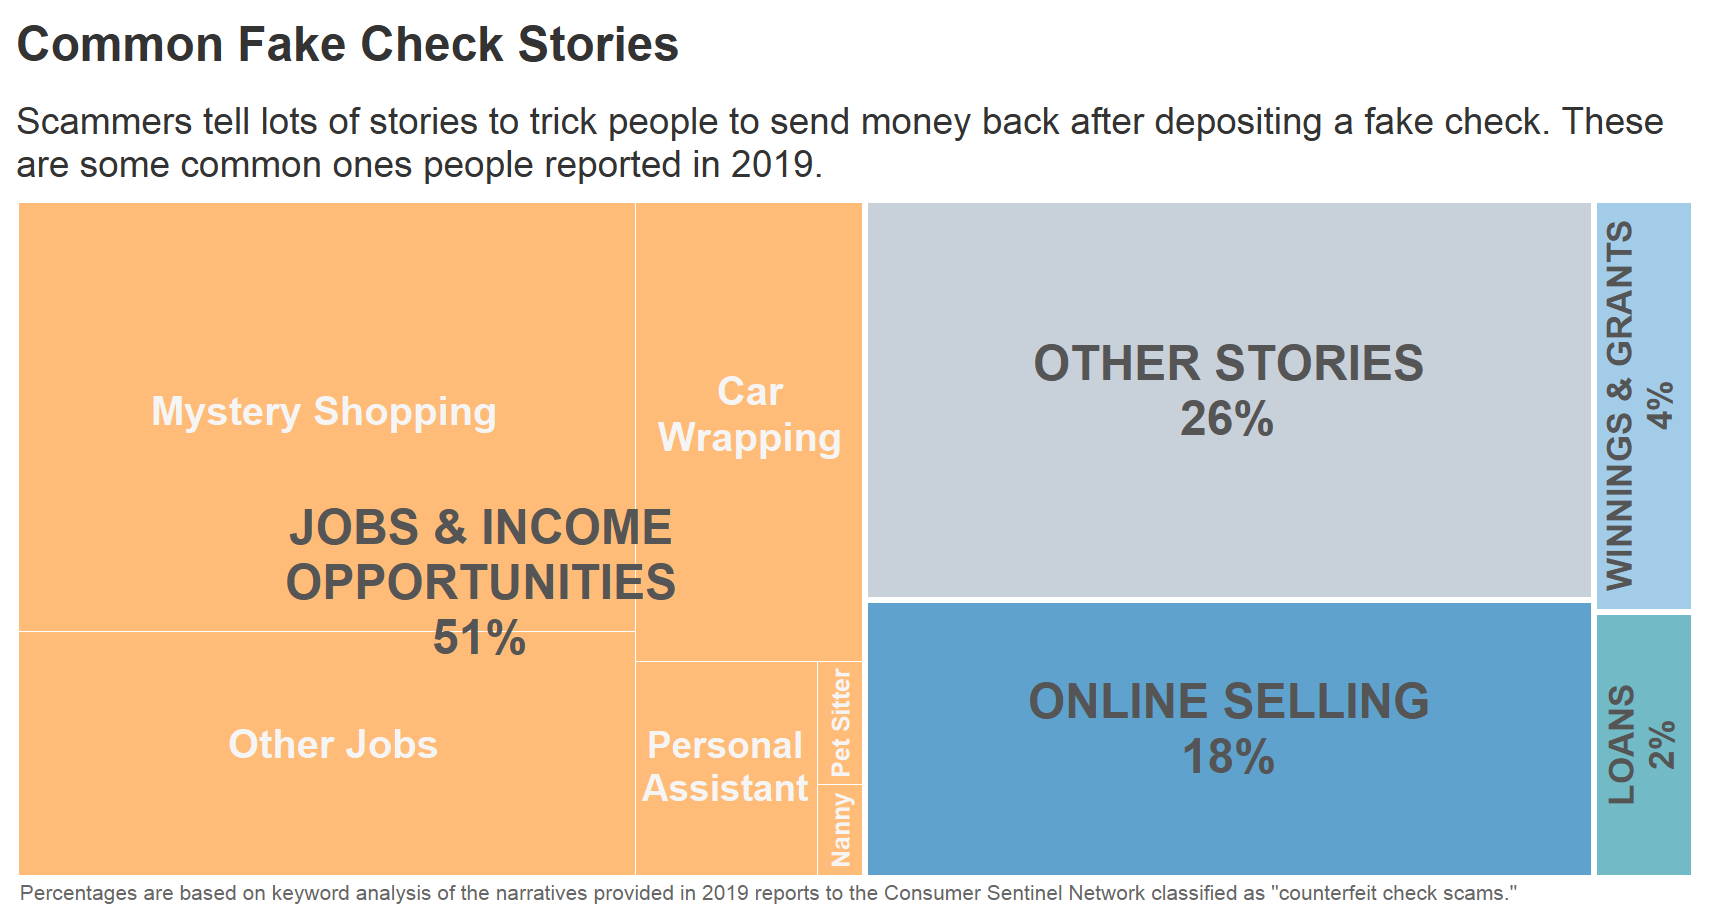 Scammers tell lots of stories to trick people to send money back after depositing a fake check, including mystery shopping, online selling, loans, personal assistant, other jobs, car wrapping, winnings and grants and other stories.